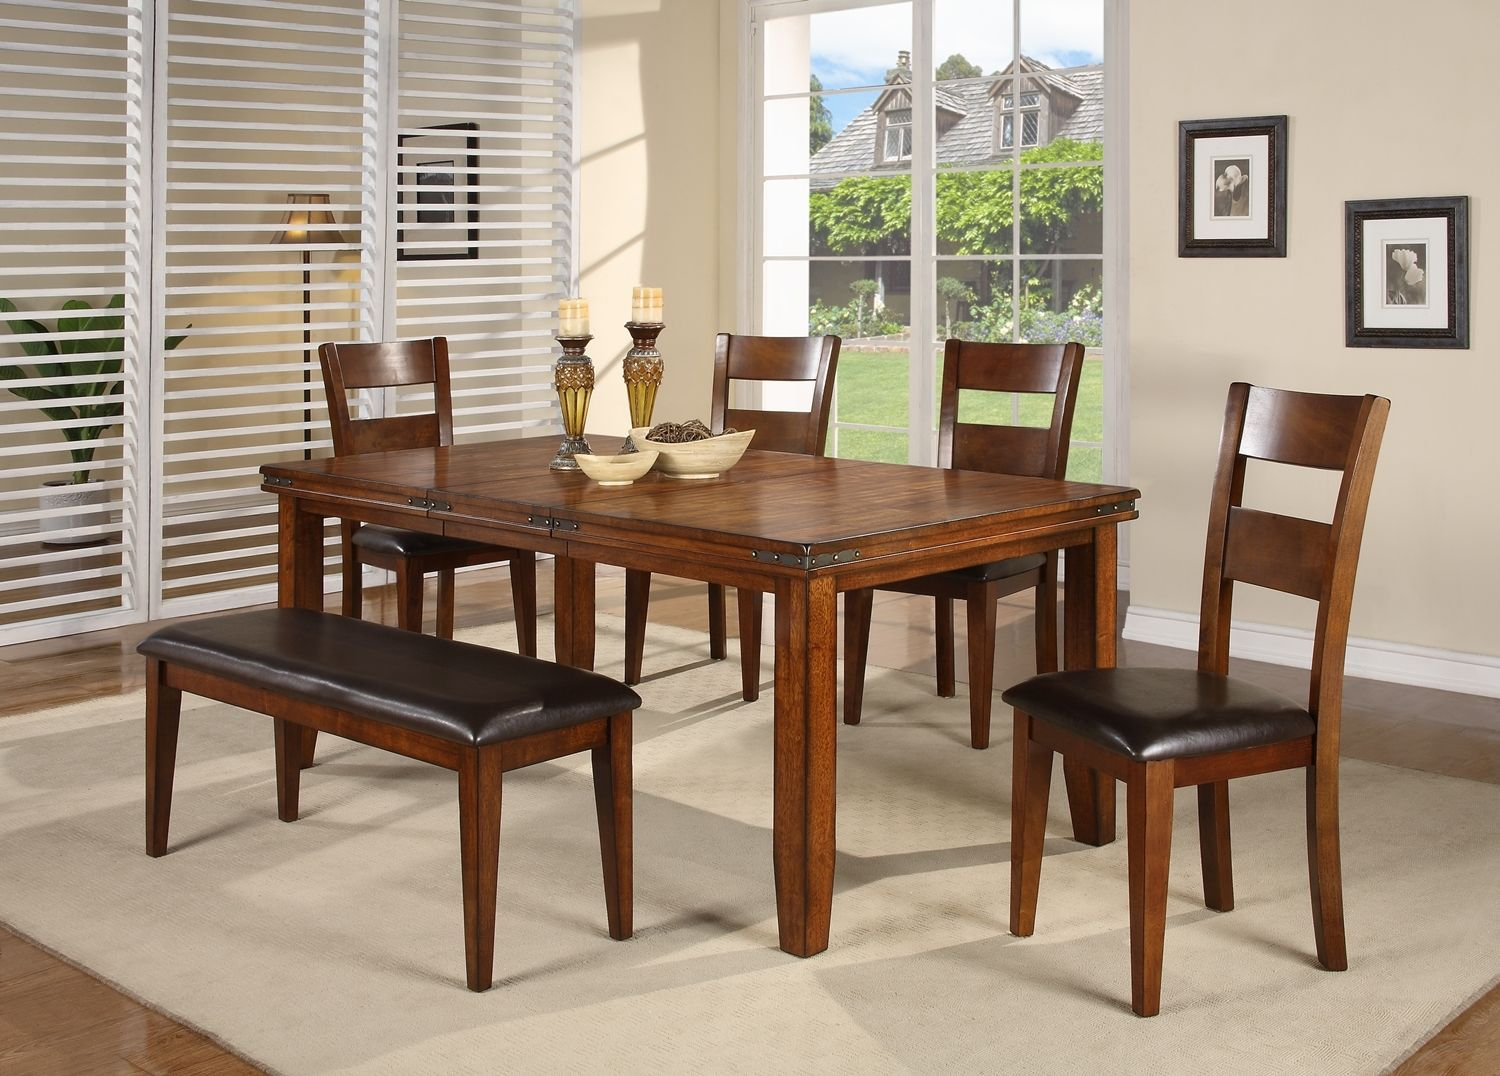 Crown Mark 2101 Dining Room Set 6pc. Figaro Chic Contemporary Modern Style